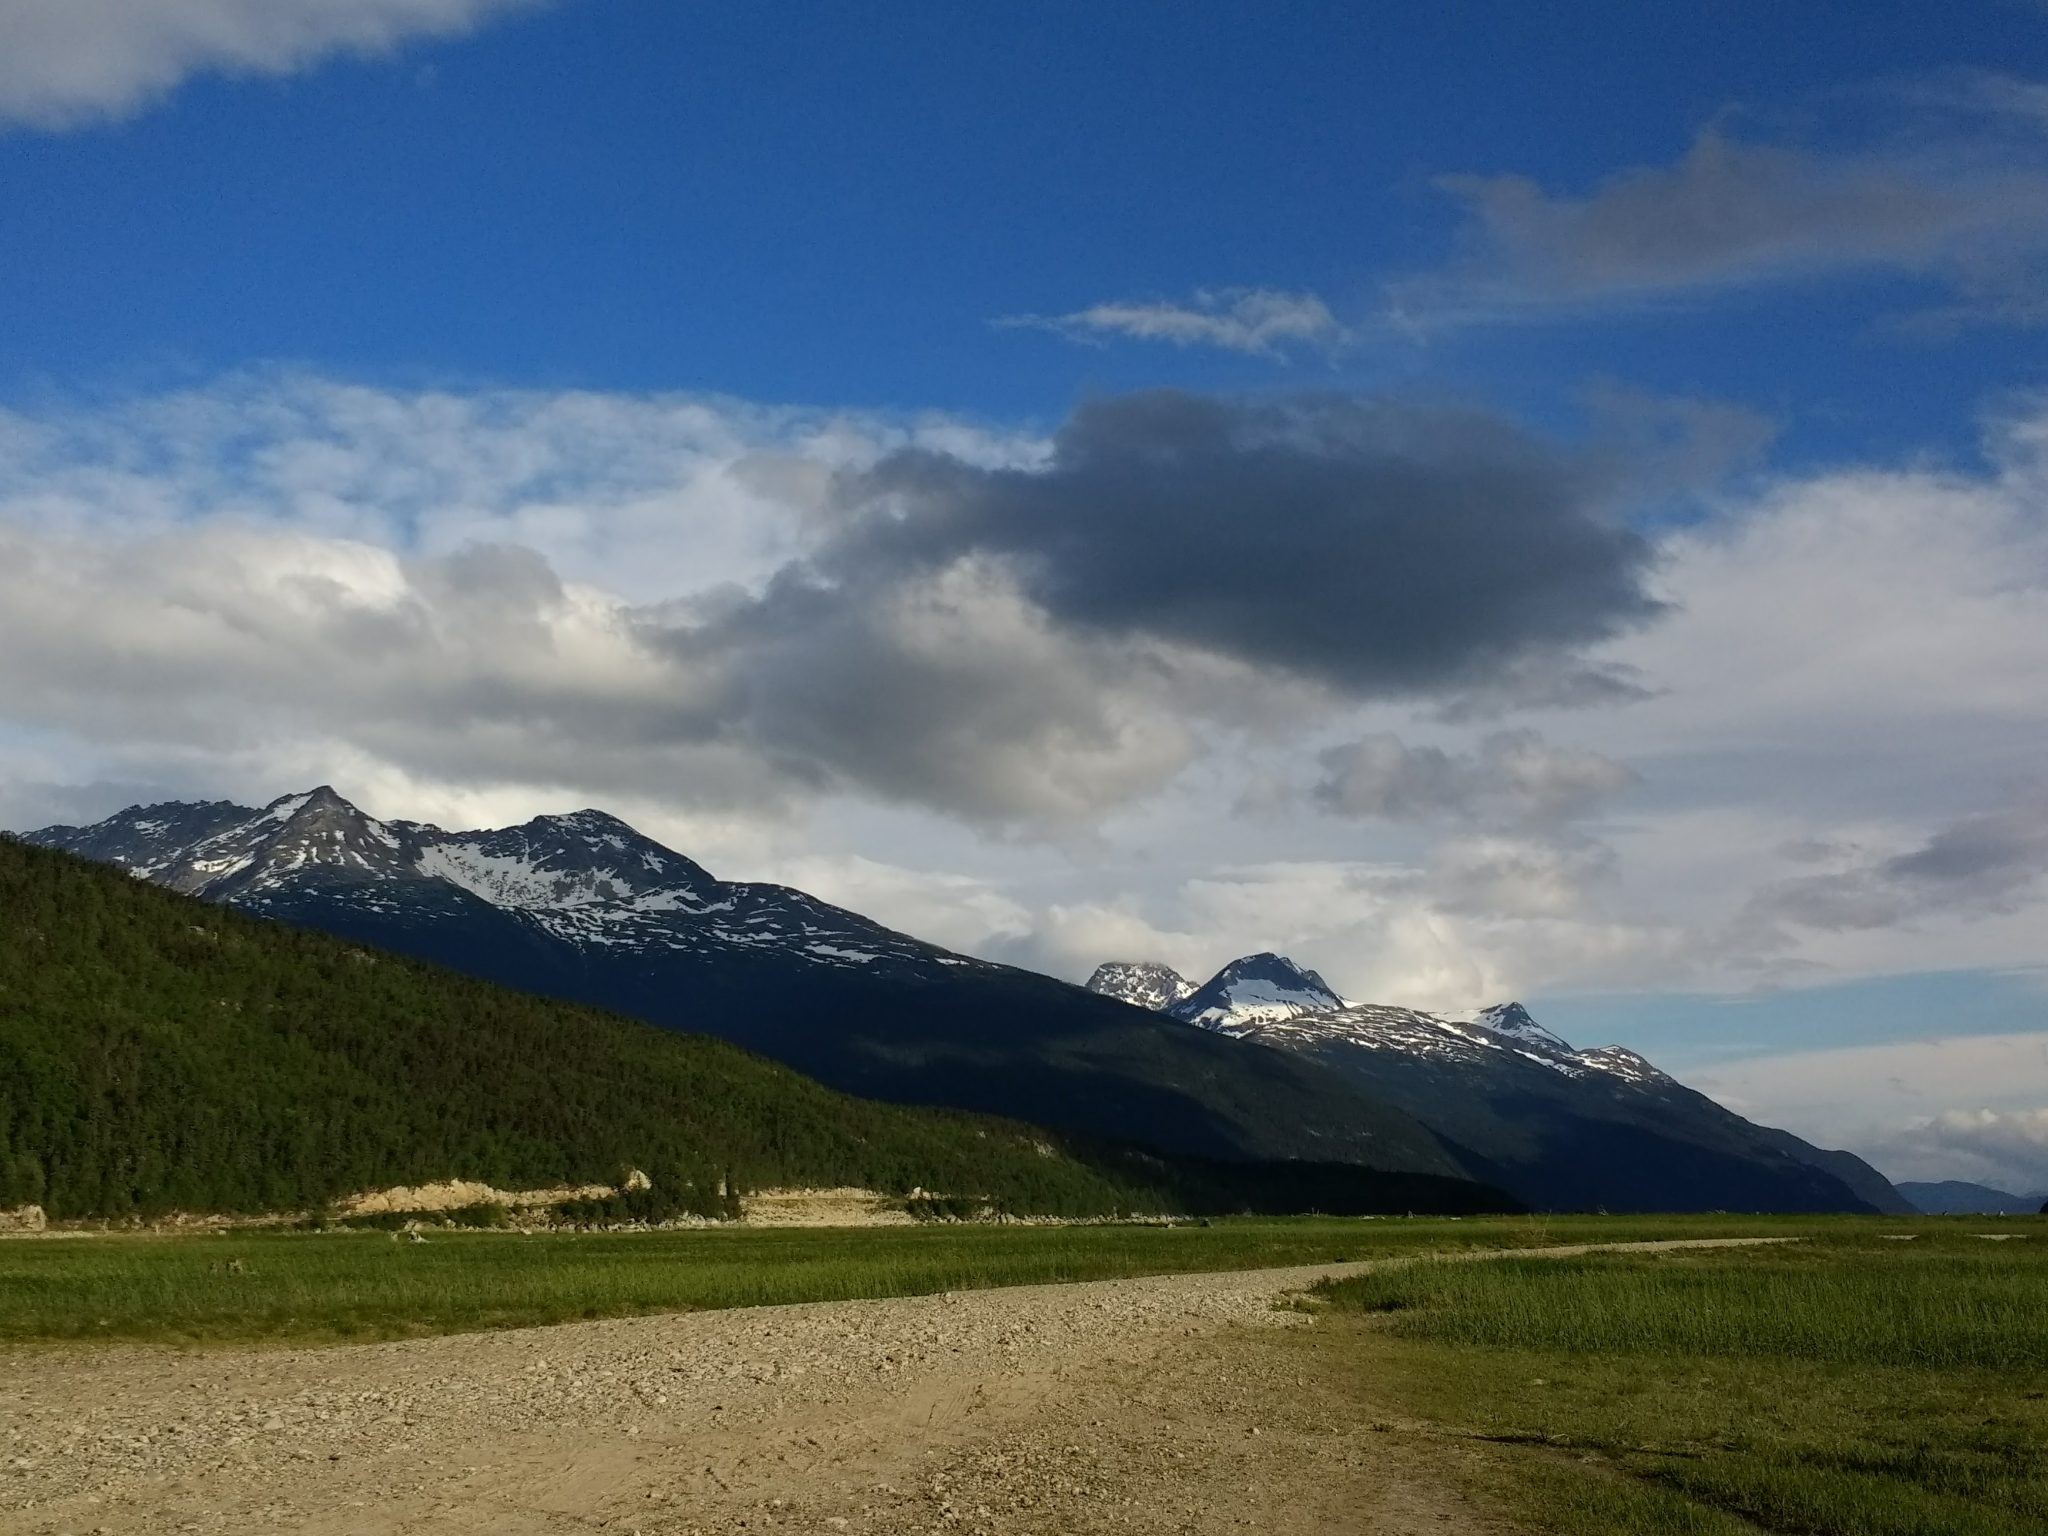 A gravel road through a meadow with snow capped mountains and partly sunny sky